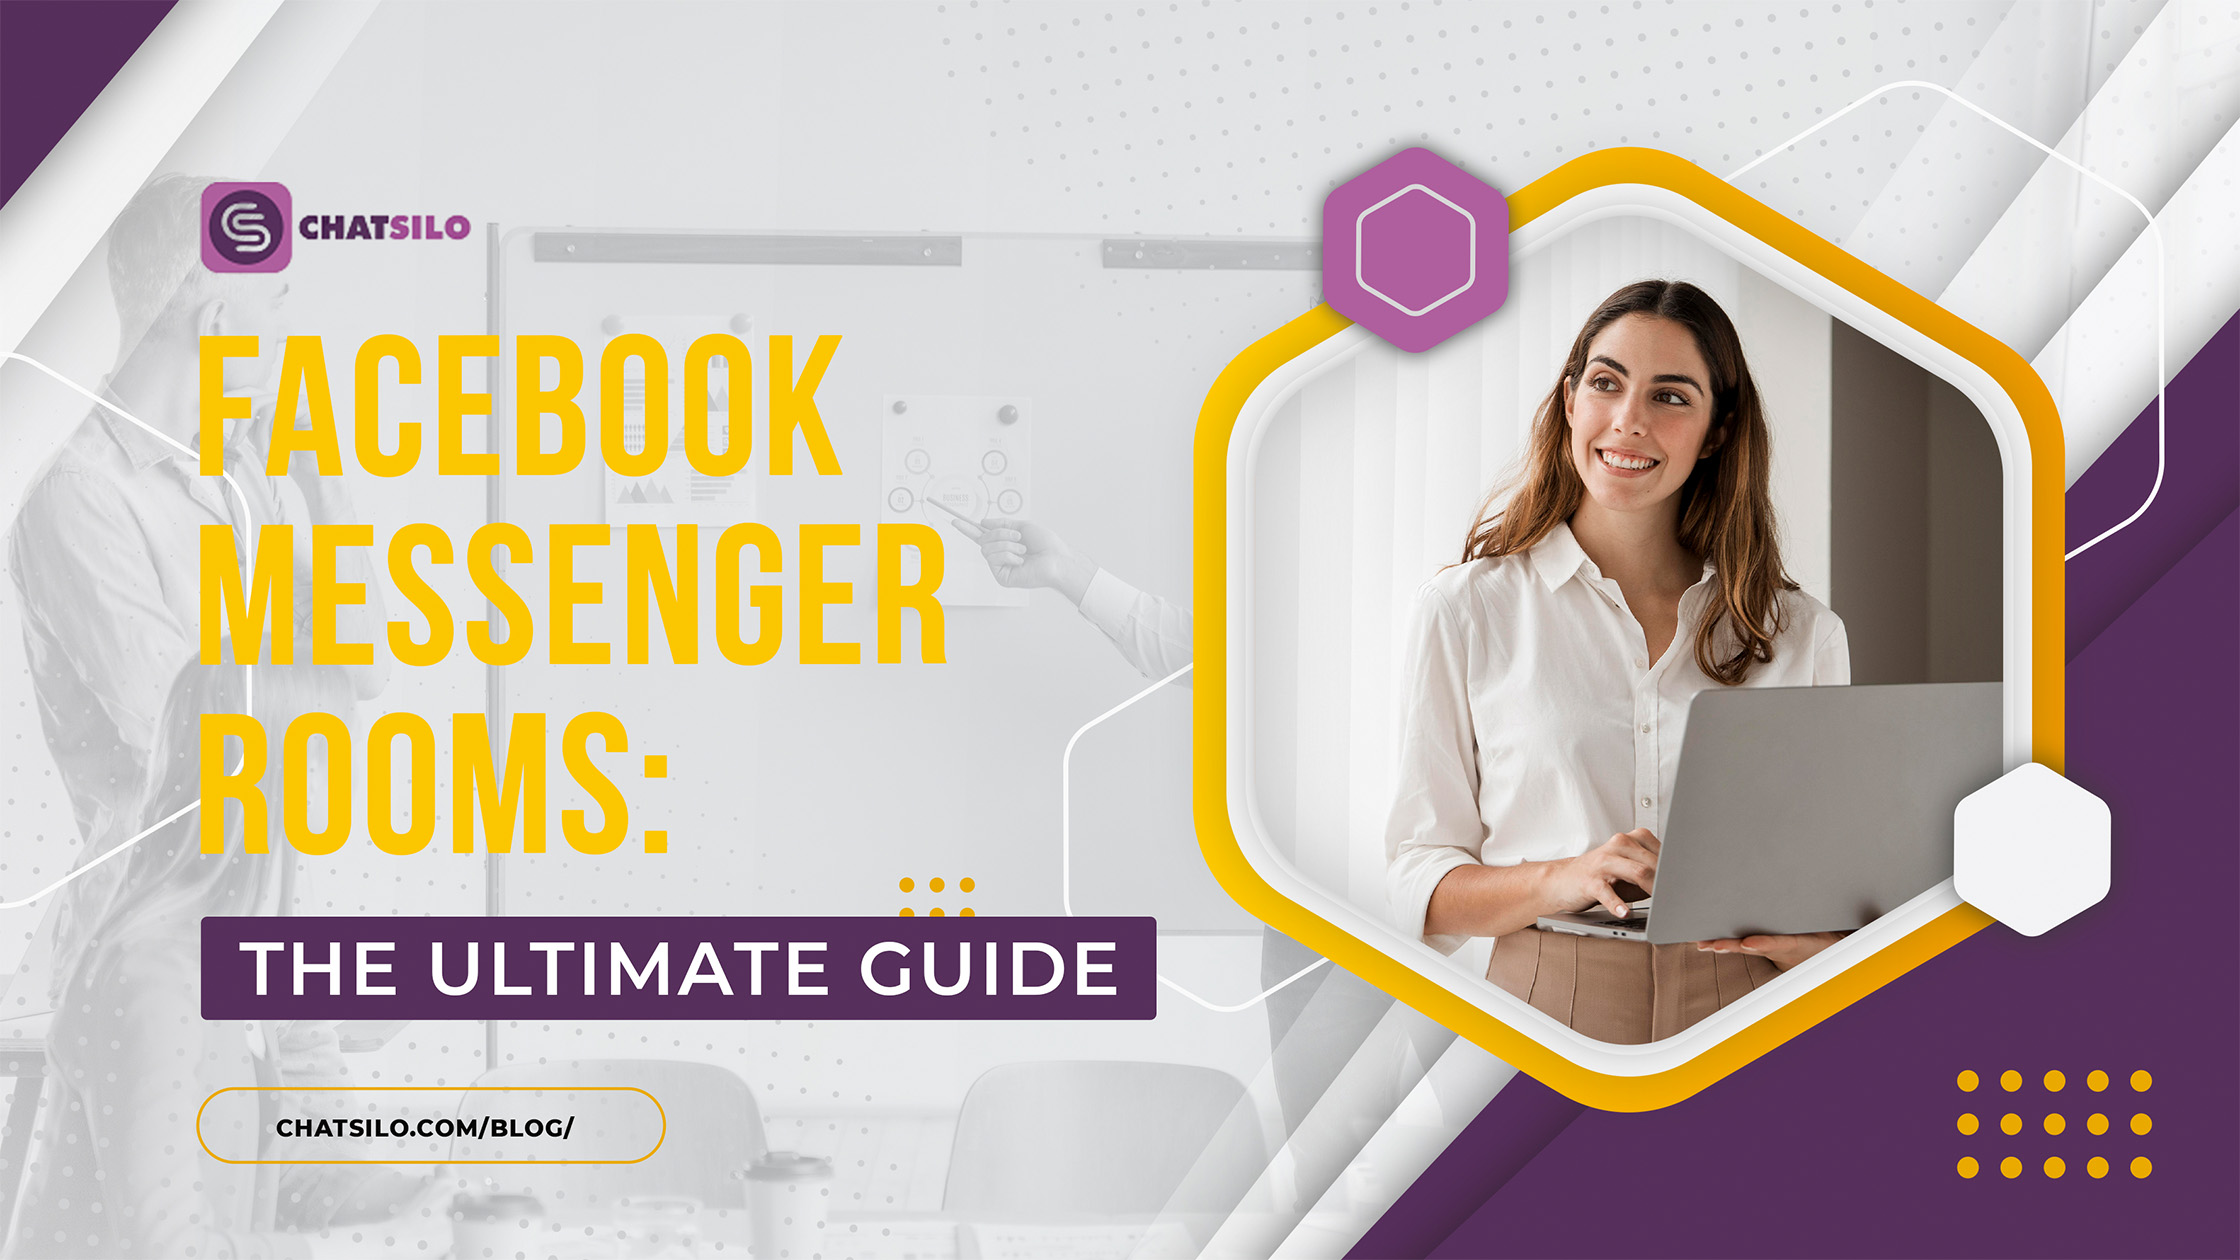 Facebook Messenger Rooms: The Ultimate Guide